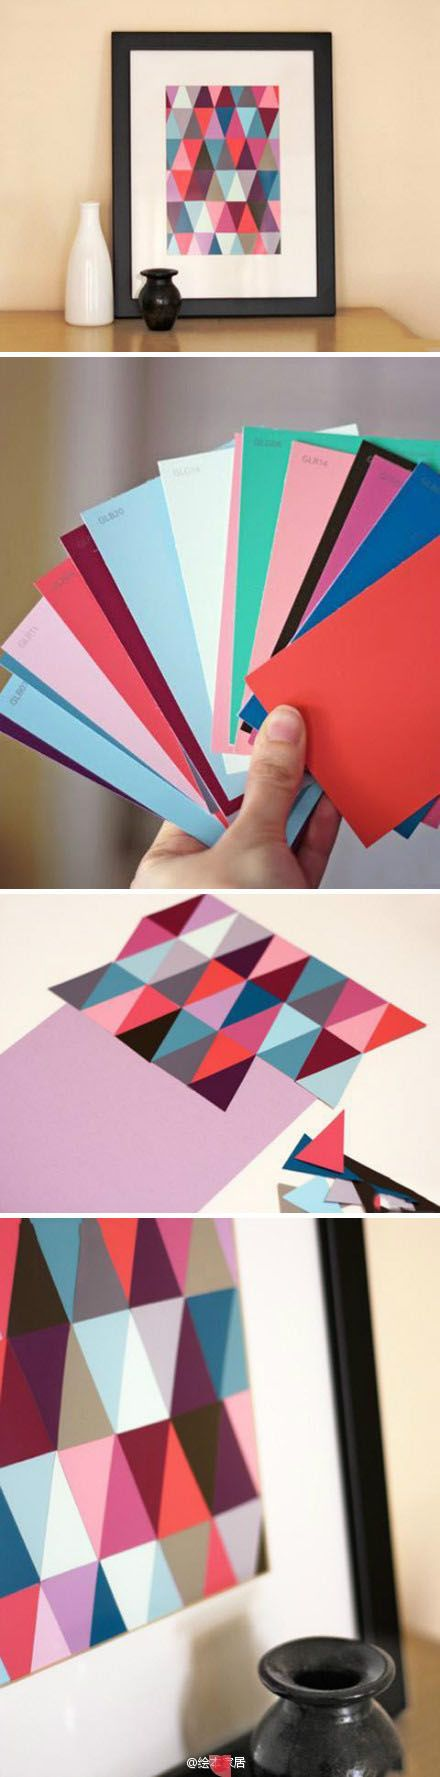 DIY Tesselation Art made with paint chips ...would look really cool in a dorm